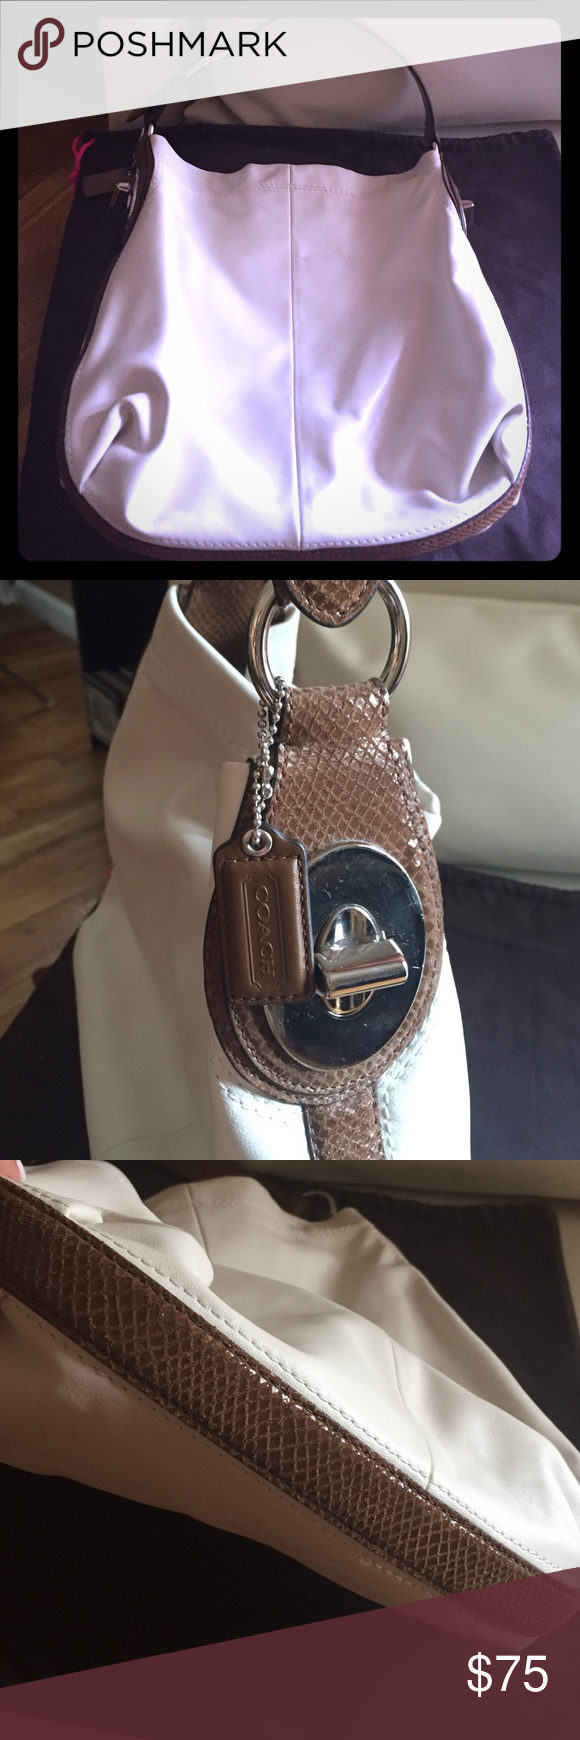 Coach Hobo. Cream w/brown snake print strap. Used. Used a couple of times but still in excellent condition. Accents are silver. Bag is 100% leather cream color which resembles more of a bone white and straps/piping are a beautiful brown snake print suede. Will ship with dust bag. Coach Bags Hobos